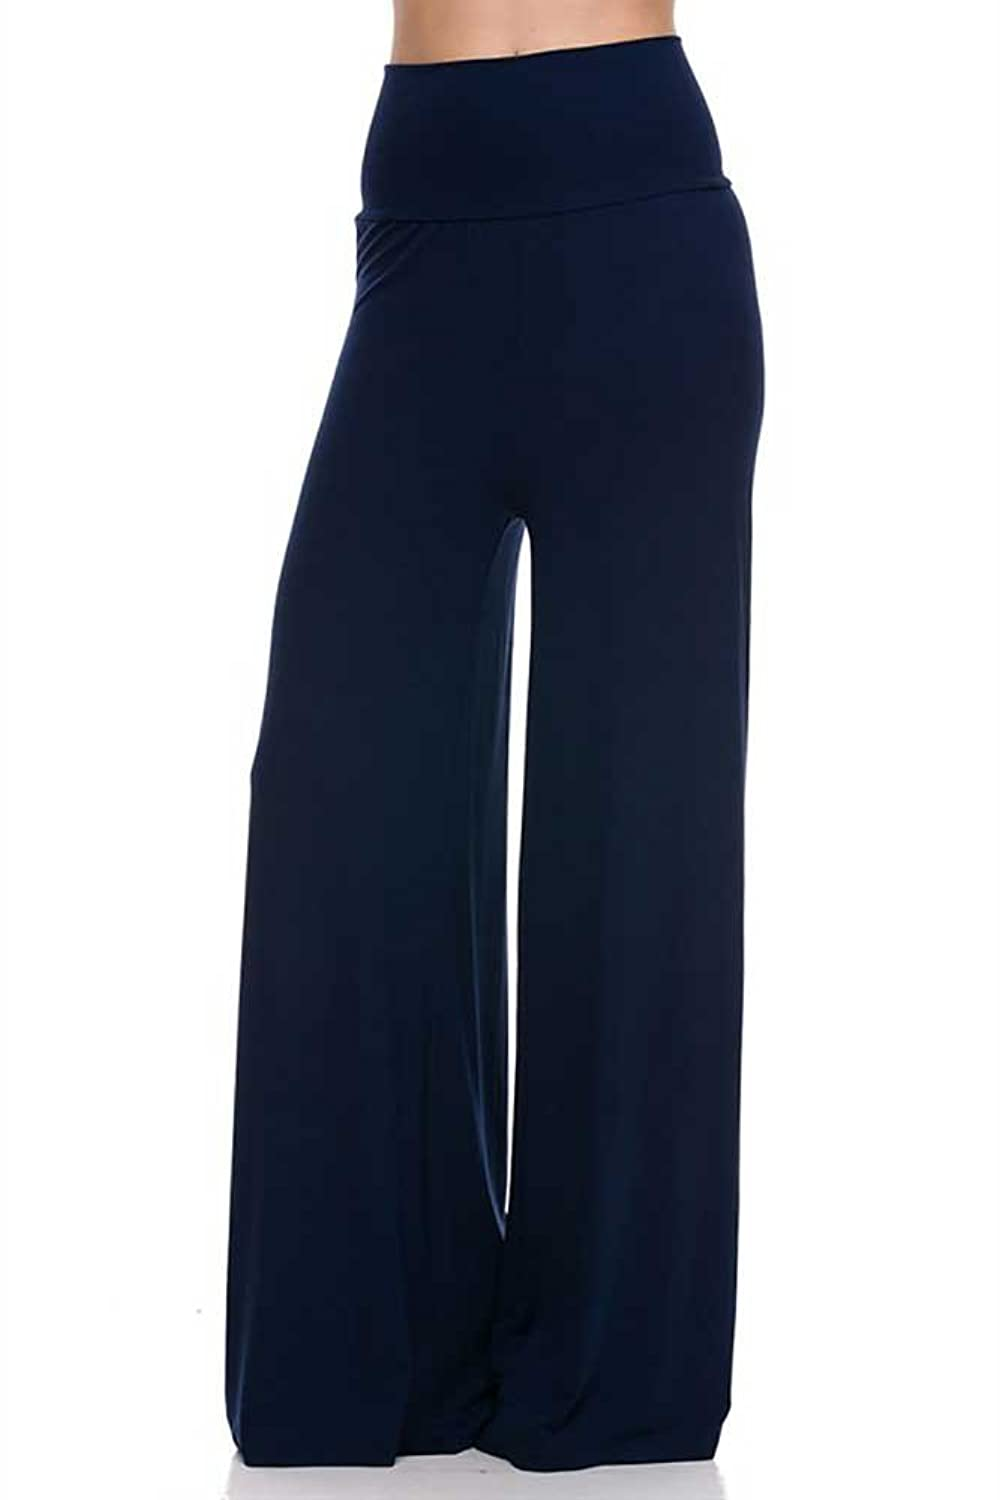 191aacc92f Solid Model High Waisted Palazzo Pants (XXL